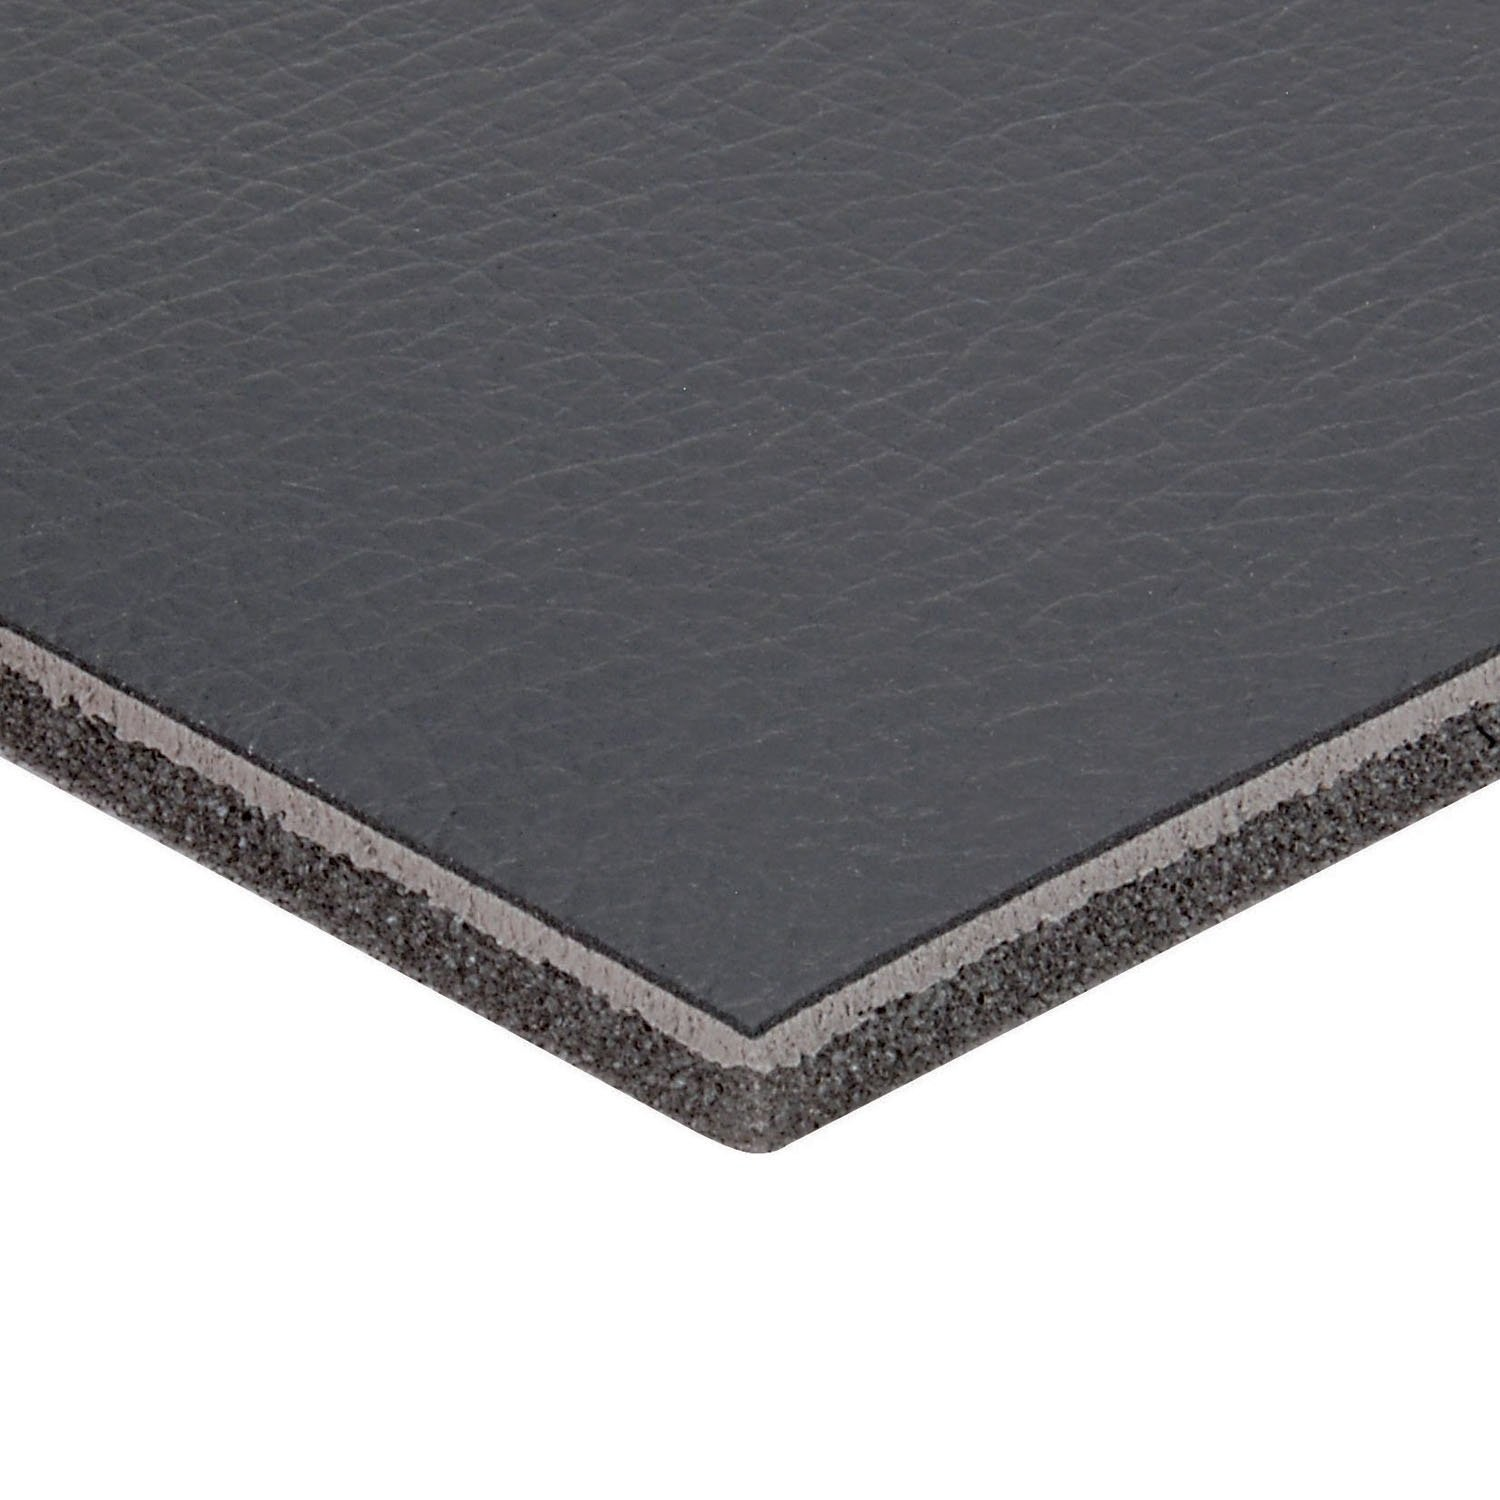 Design Engineering 050120 Boom Mat Leather Look Sound Barrier and Insulation, 24'' x 48''